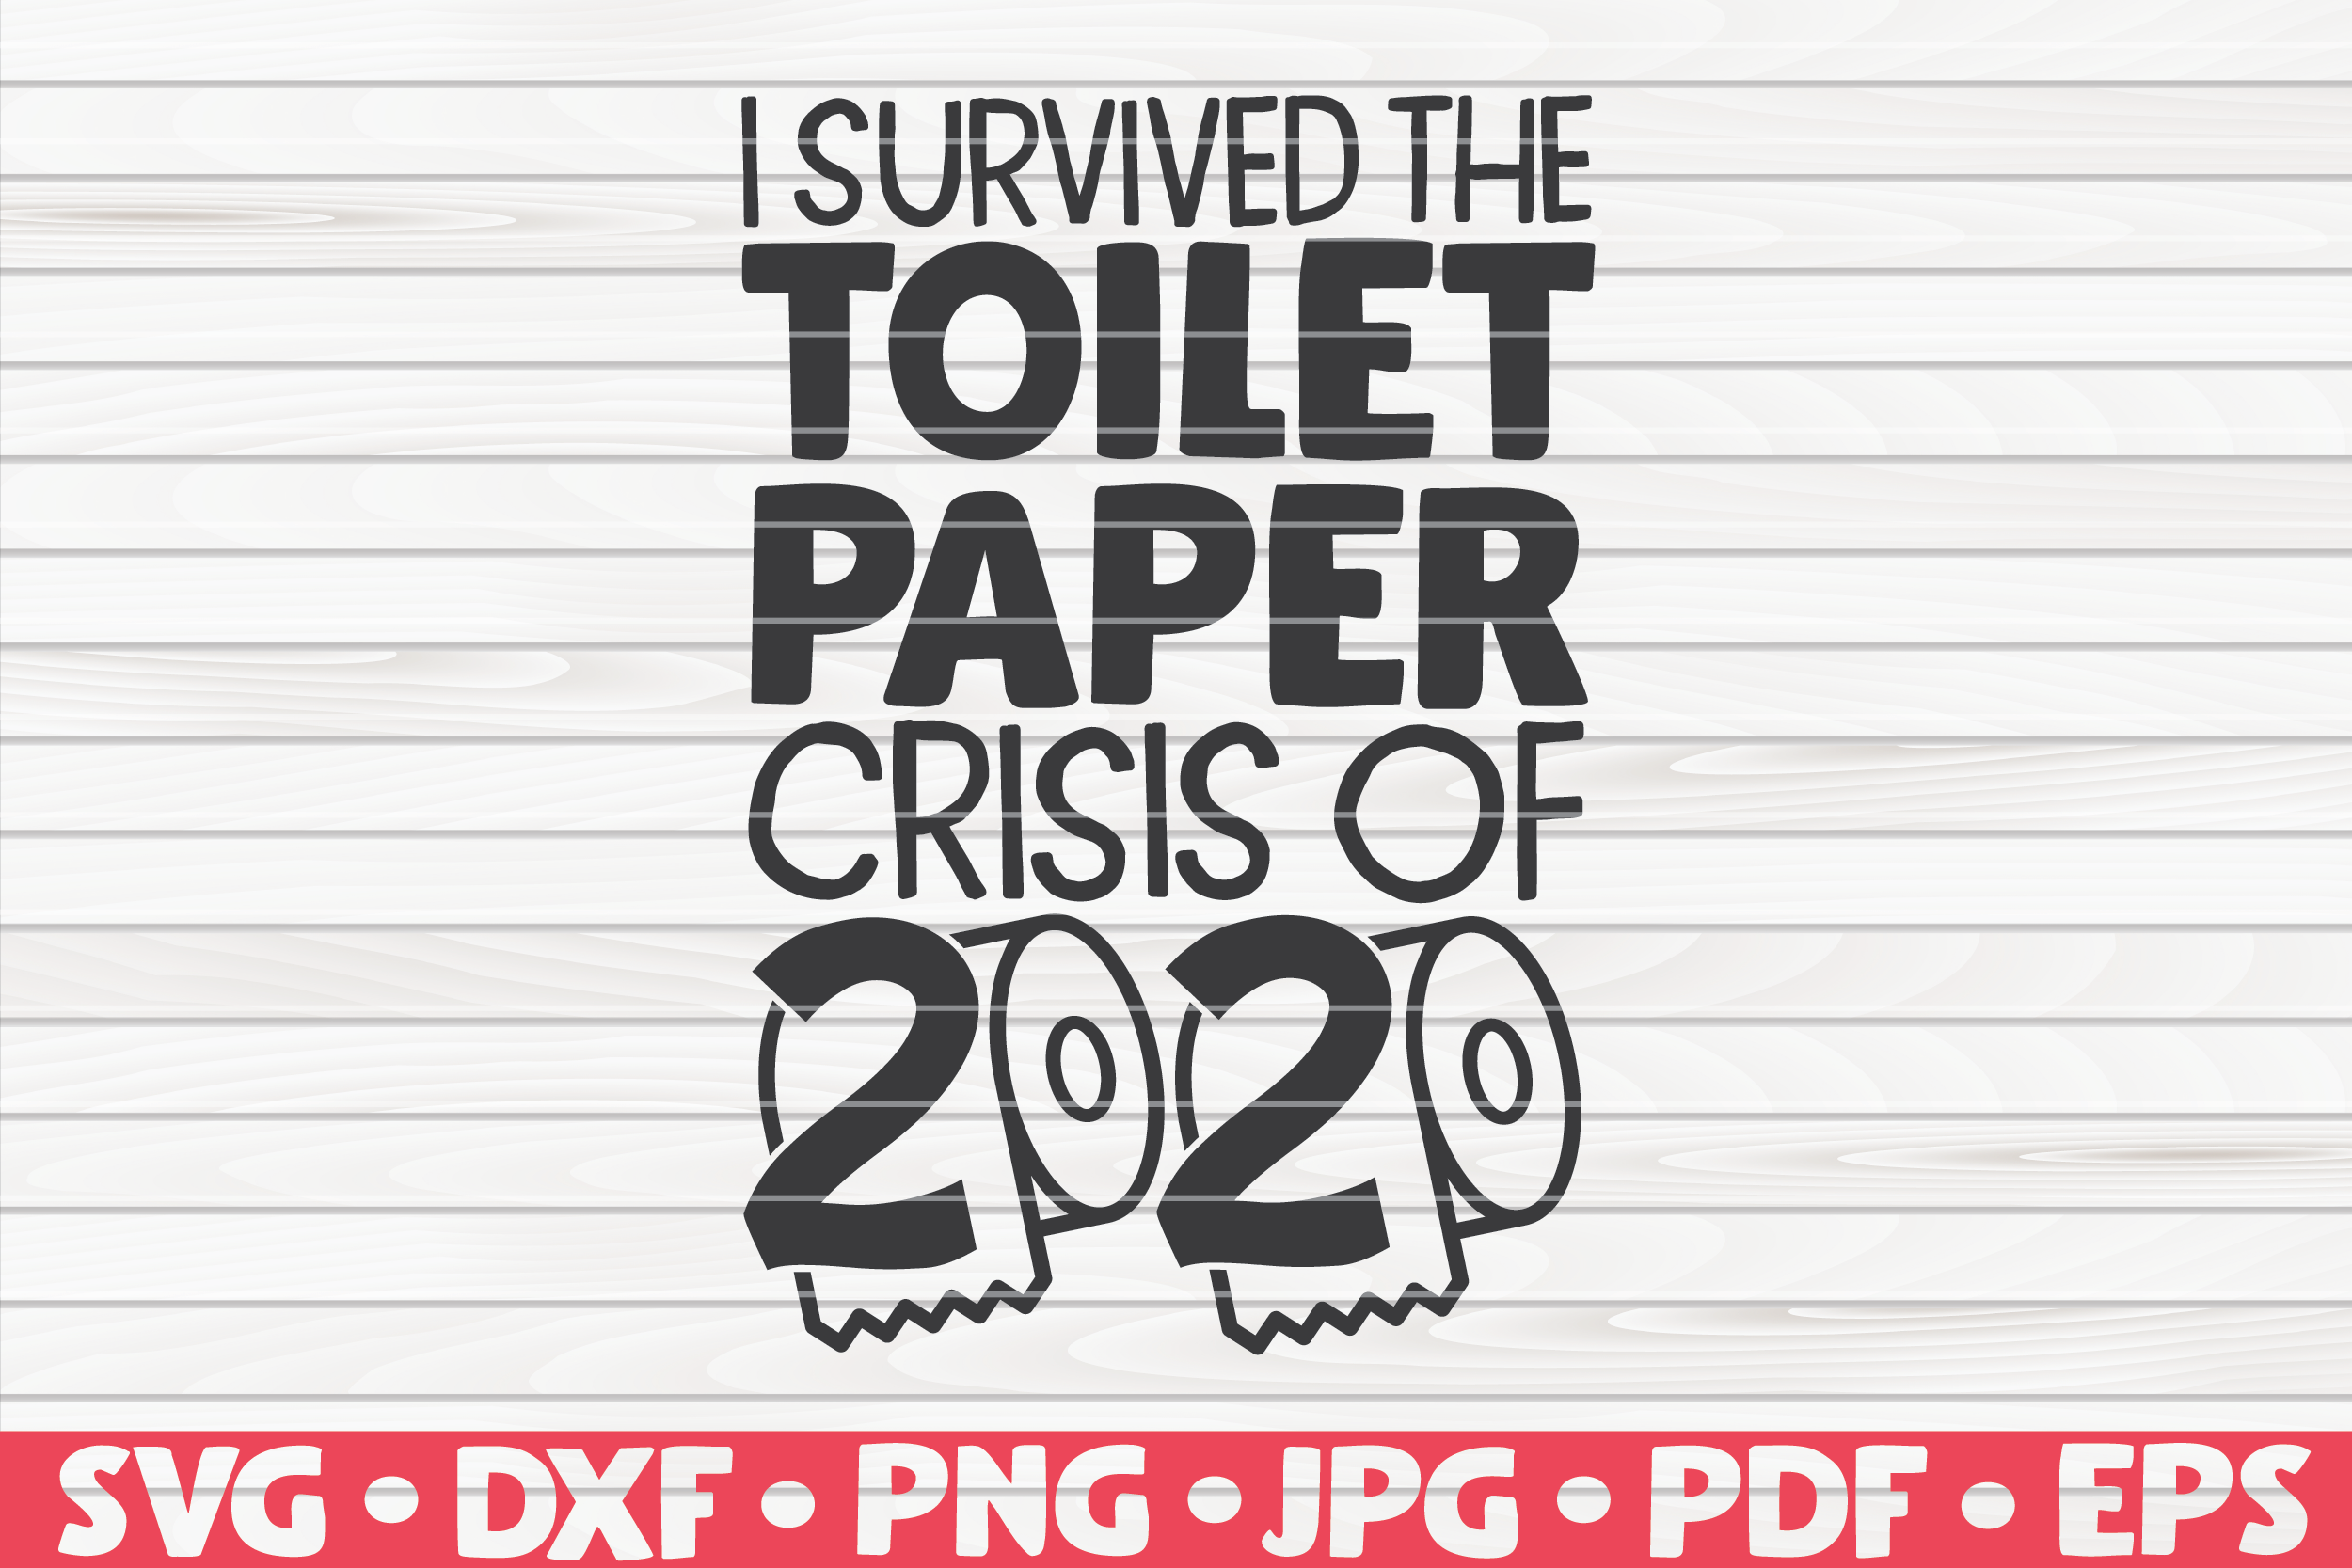 Download Free I Survived The Toilet Paper Crisis Graphic By Mihaibadea95 for Cricut Explore, Silhouette and other cutting machines.